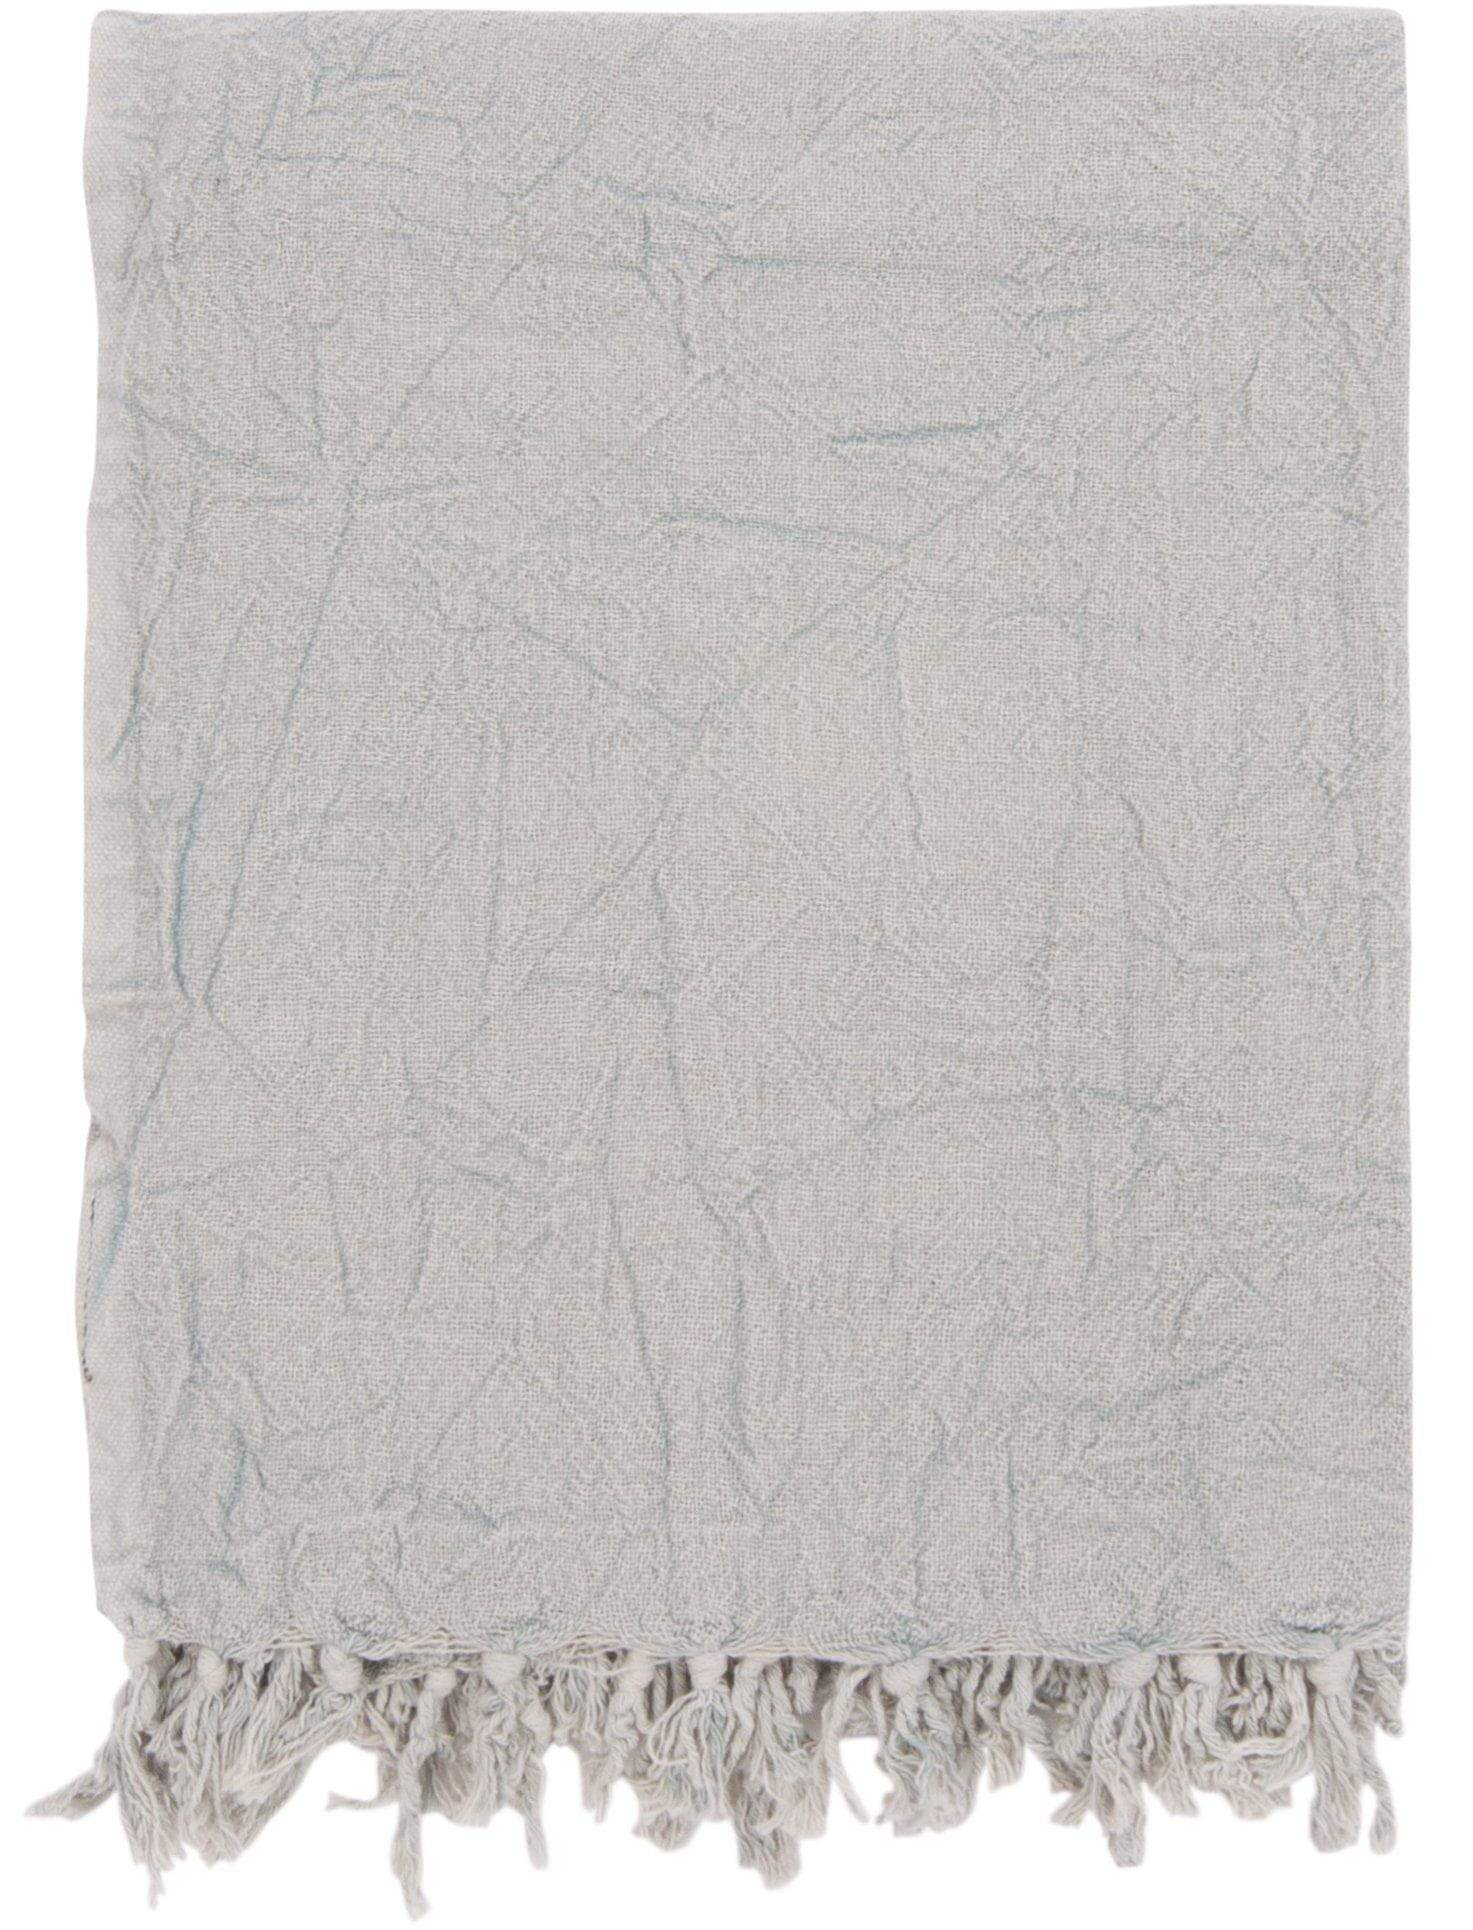 Ian Snow Ltd Light Grey Cotton Throw with Tassels